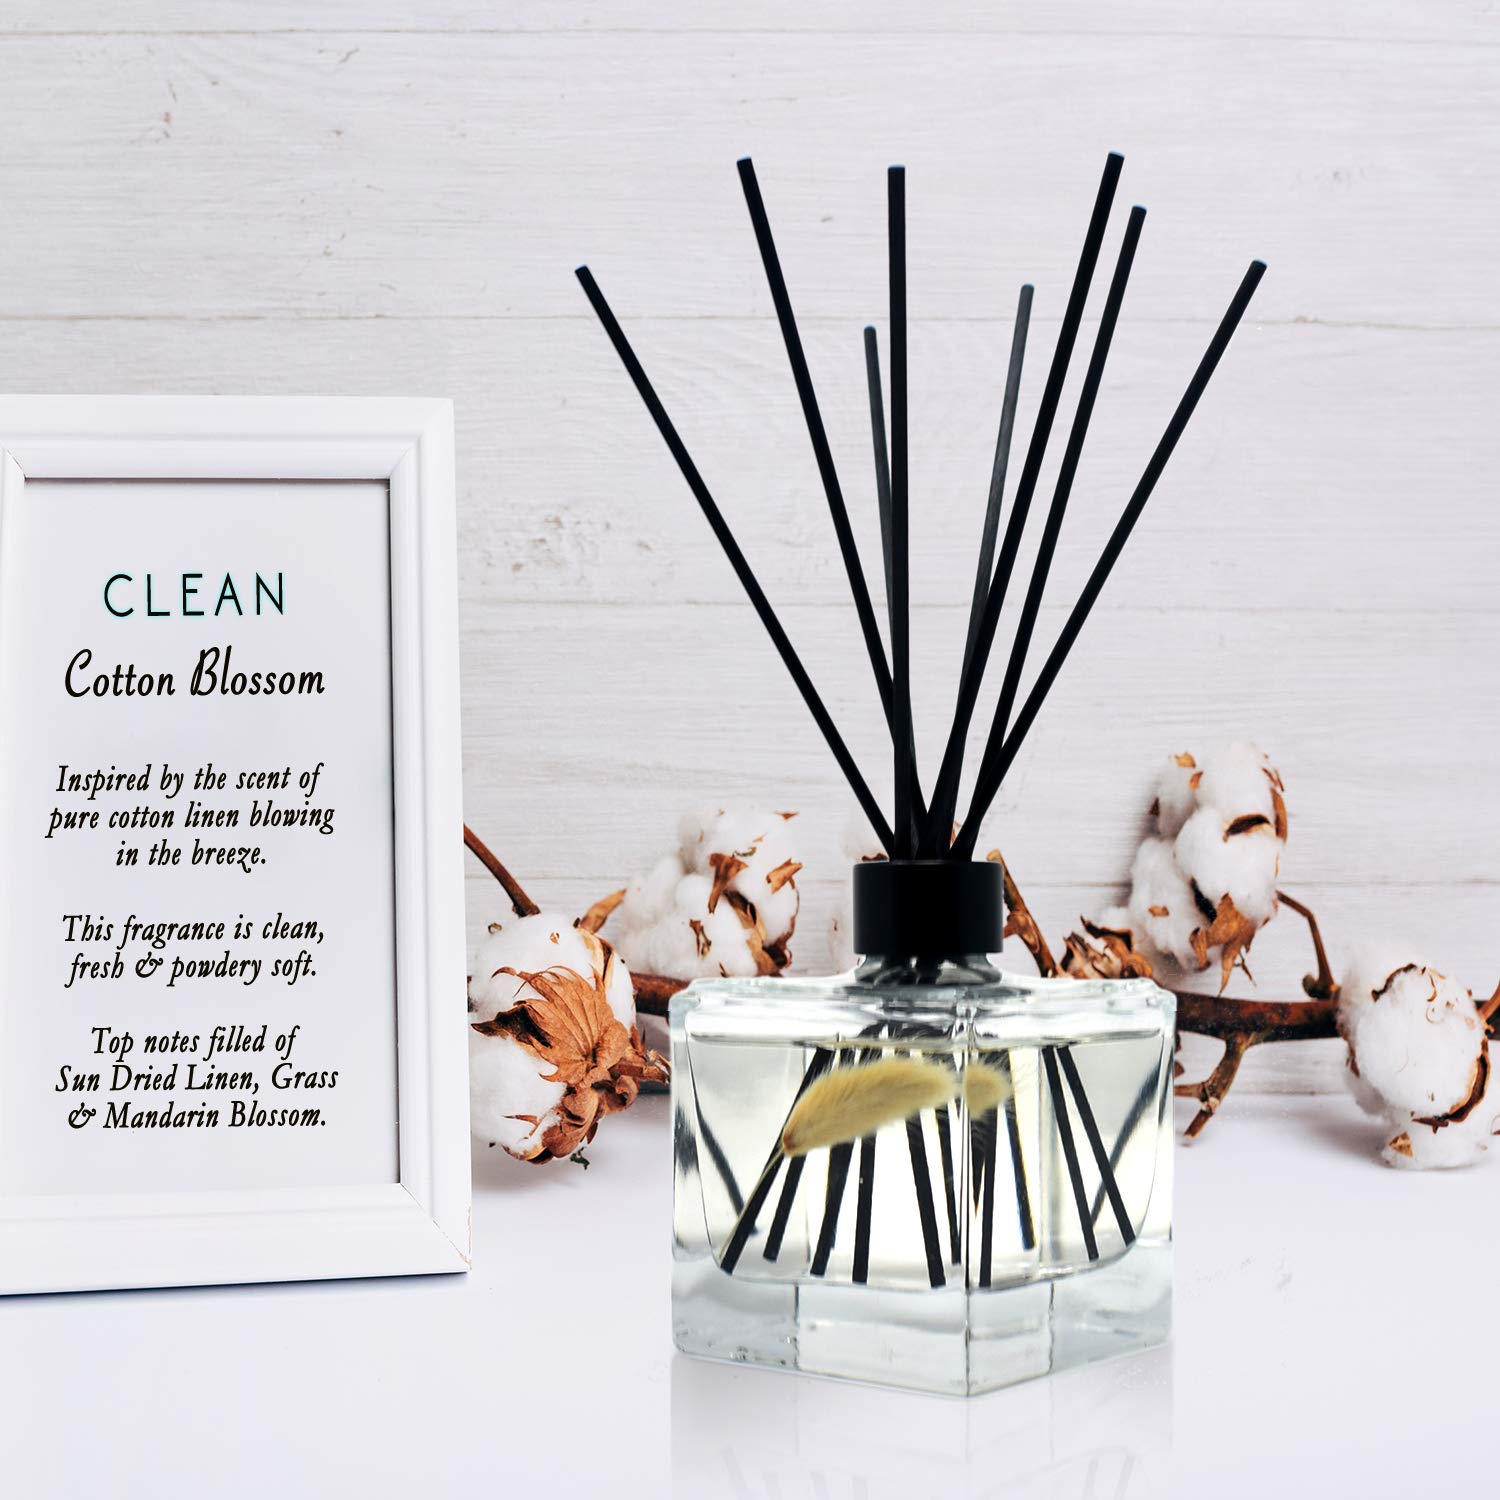 LOVSPA Clean Cotton Blossom Reed Diffuser Oil and Sticks Gift Set | Airy Green Floral with Powdery Woods, Sun Dried Linen & Mandarin Blossom | Best Housewarming Gift Idea | Made in The USA by LOVSPA (Image #4)